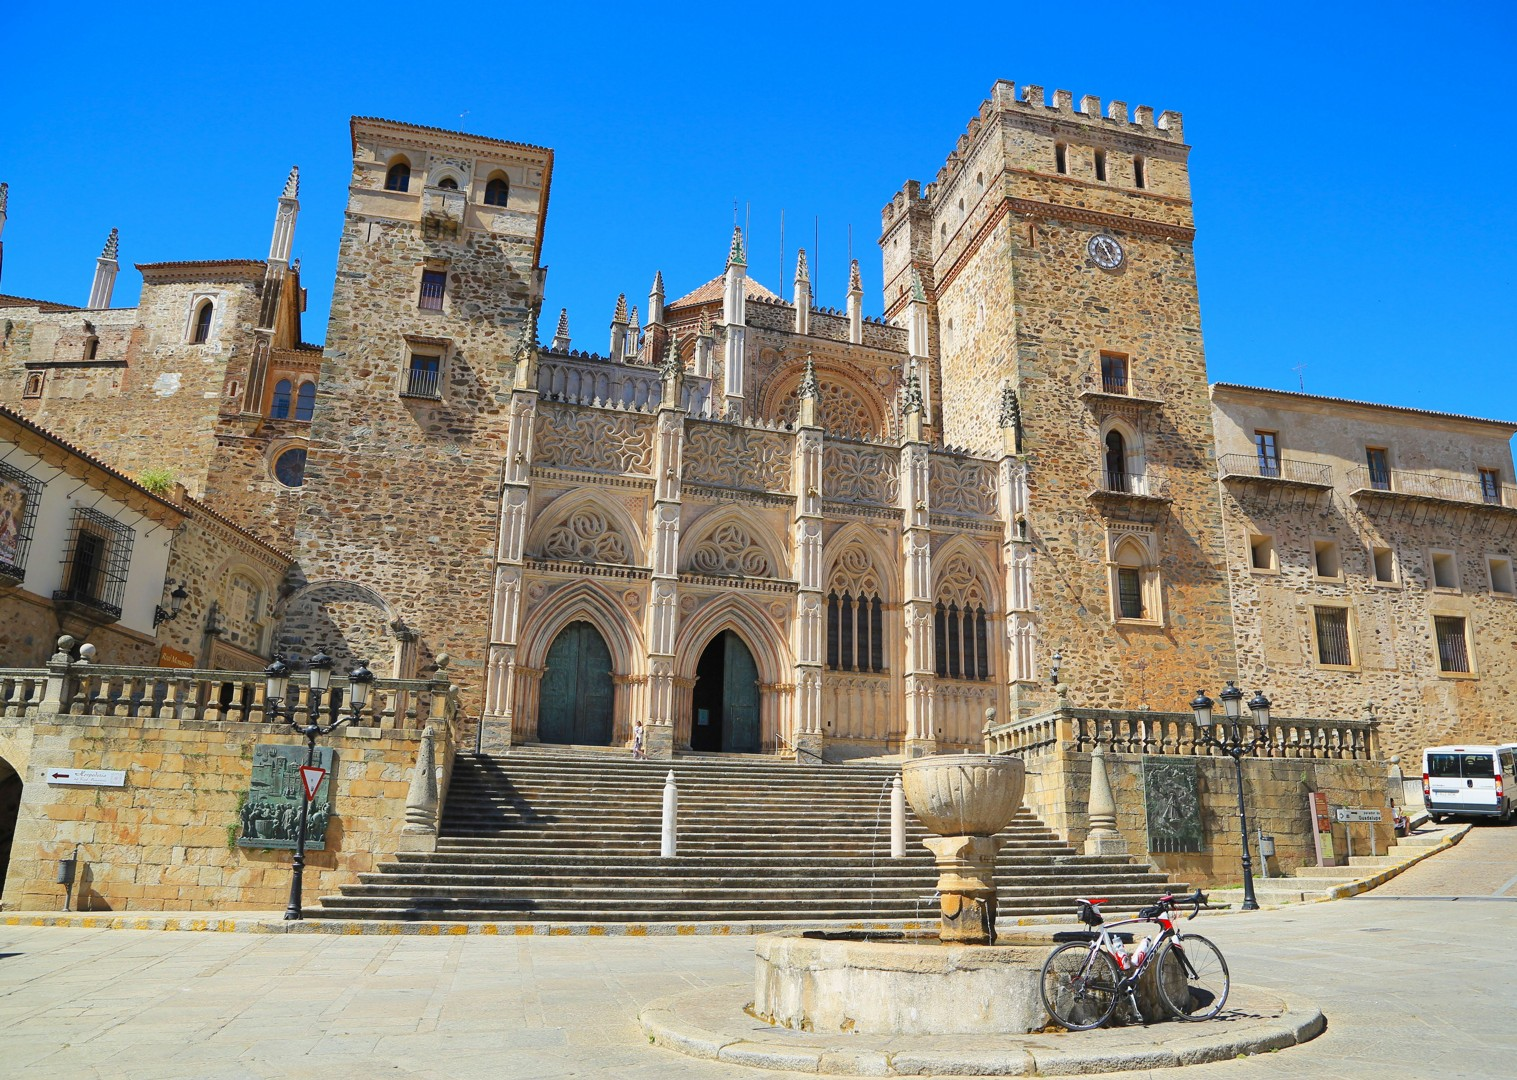 visit-guadaloupe-road-cycling-holiday-spain.jpg - Spain - Basque Country to Andalucia - North to South - 16 Day - Guided Road Cycling Holiday - Road Cycling